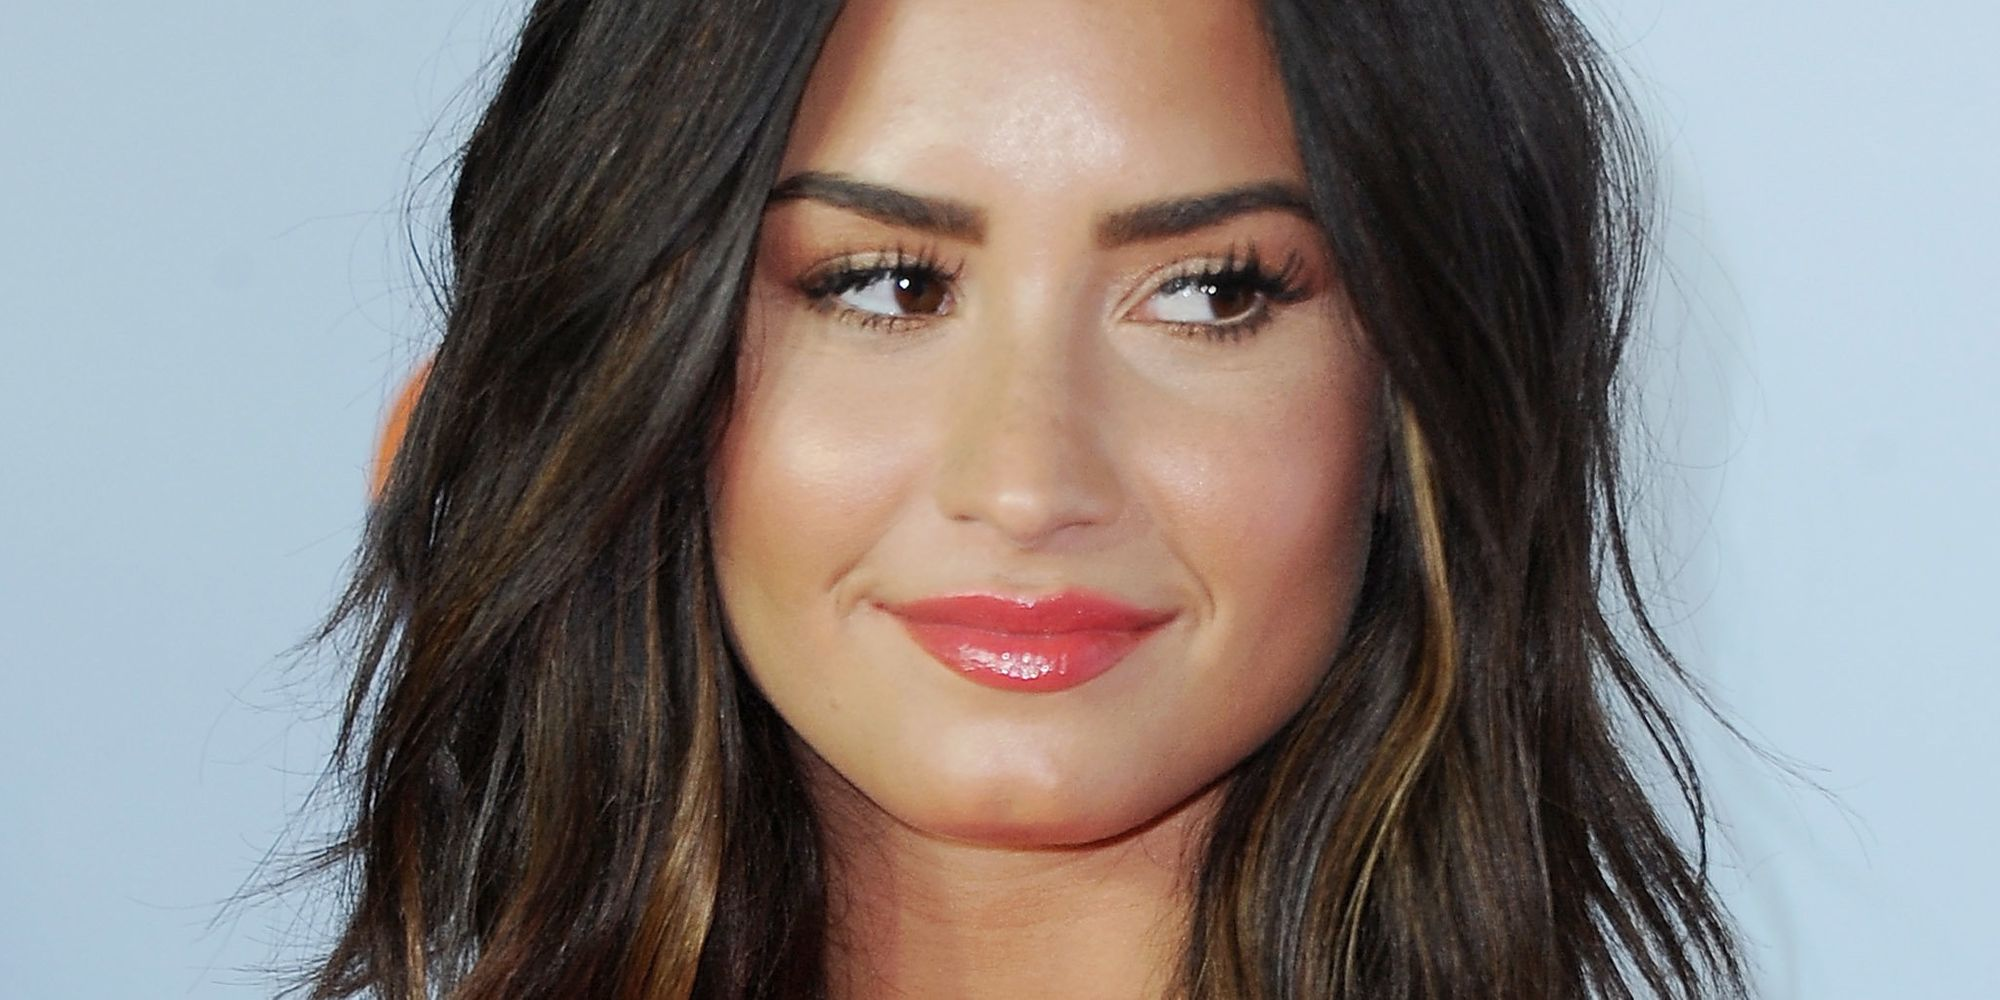 Demi Lovato Is Thoroughly Unfazed By Hackers Stealing Her Private Photos